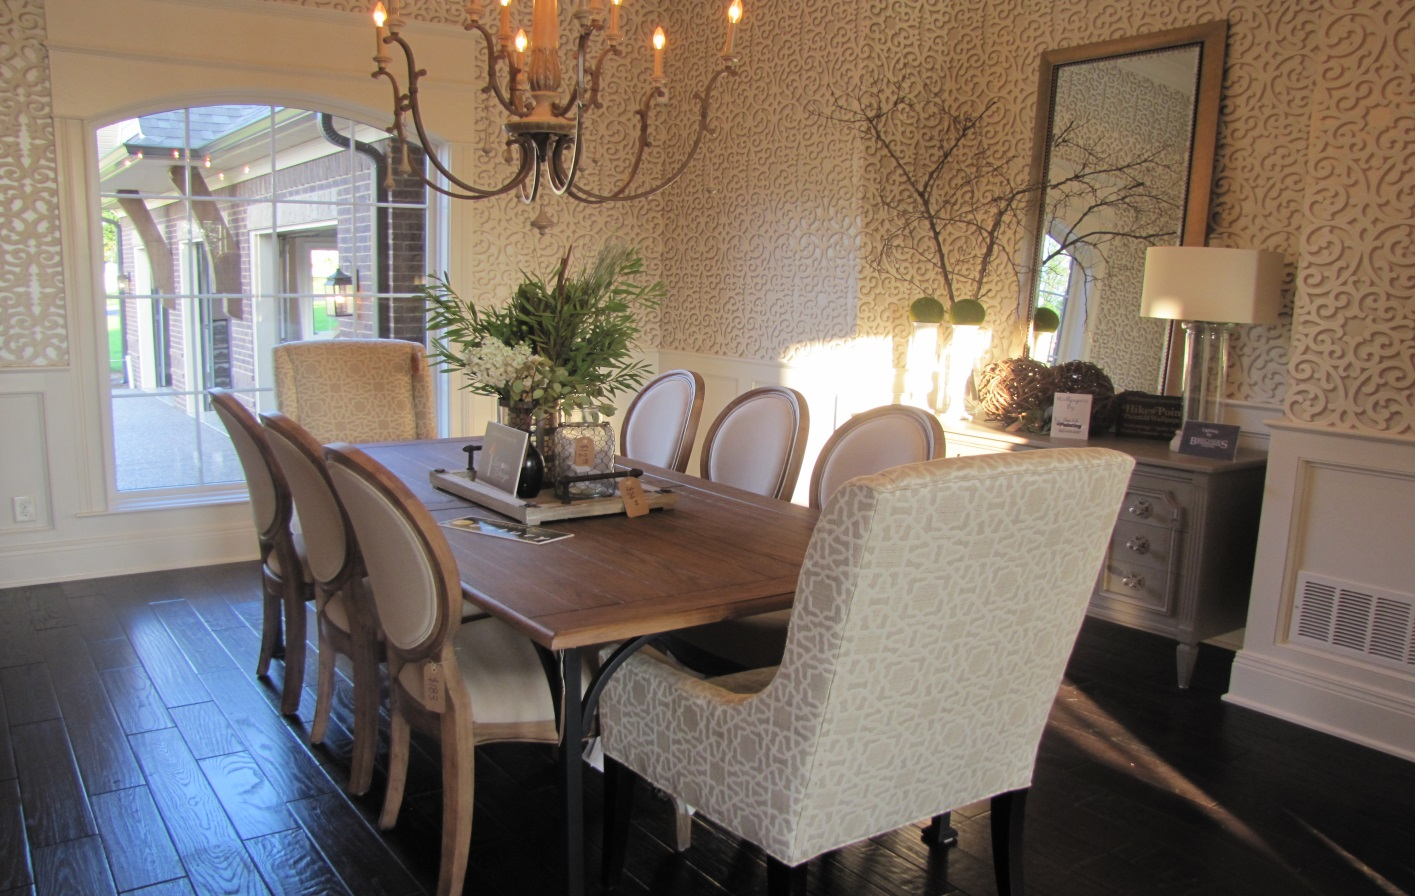 Trend: Mismatched Dining Chairs – Save Room For Design